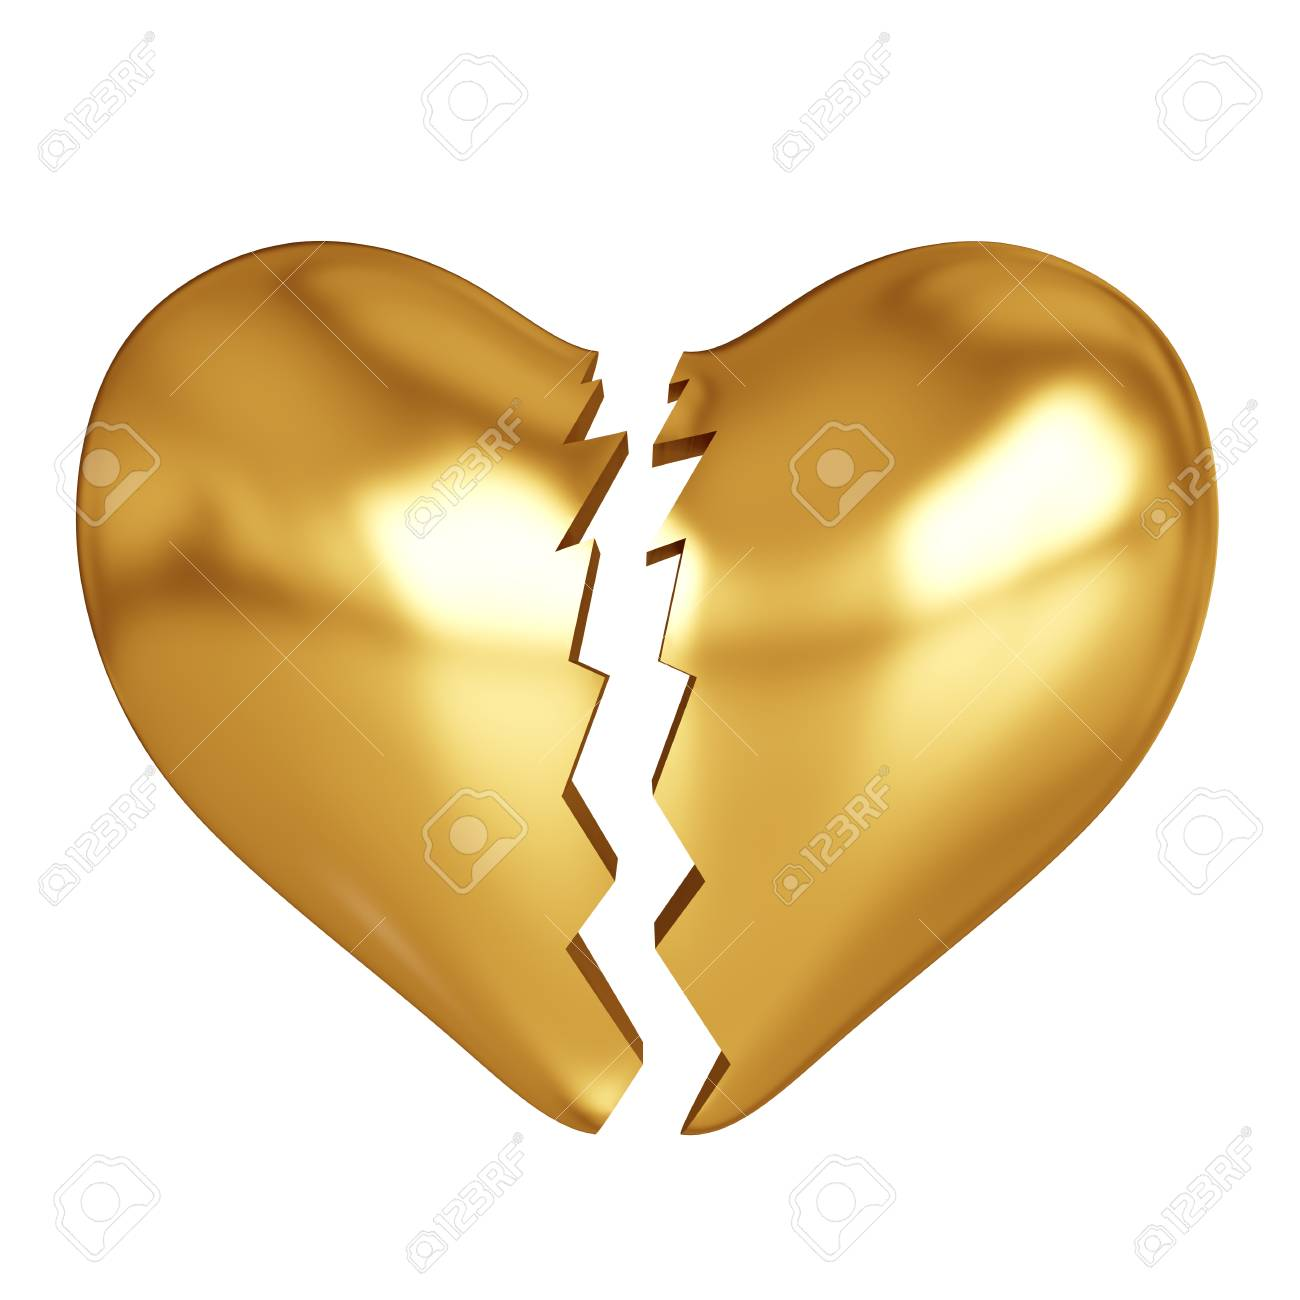 3d Render Of Golden Broken Heart Om White Background Stock Photo